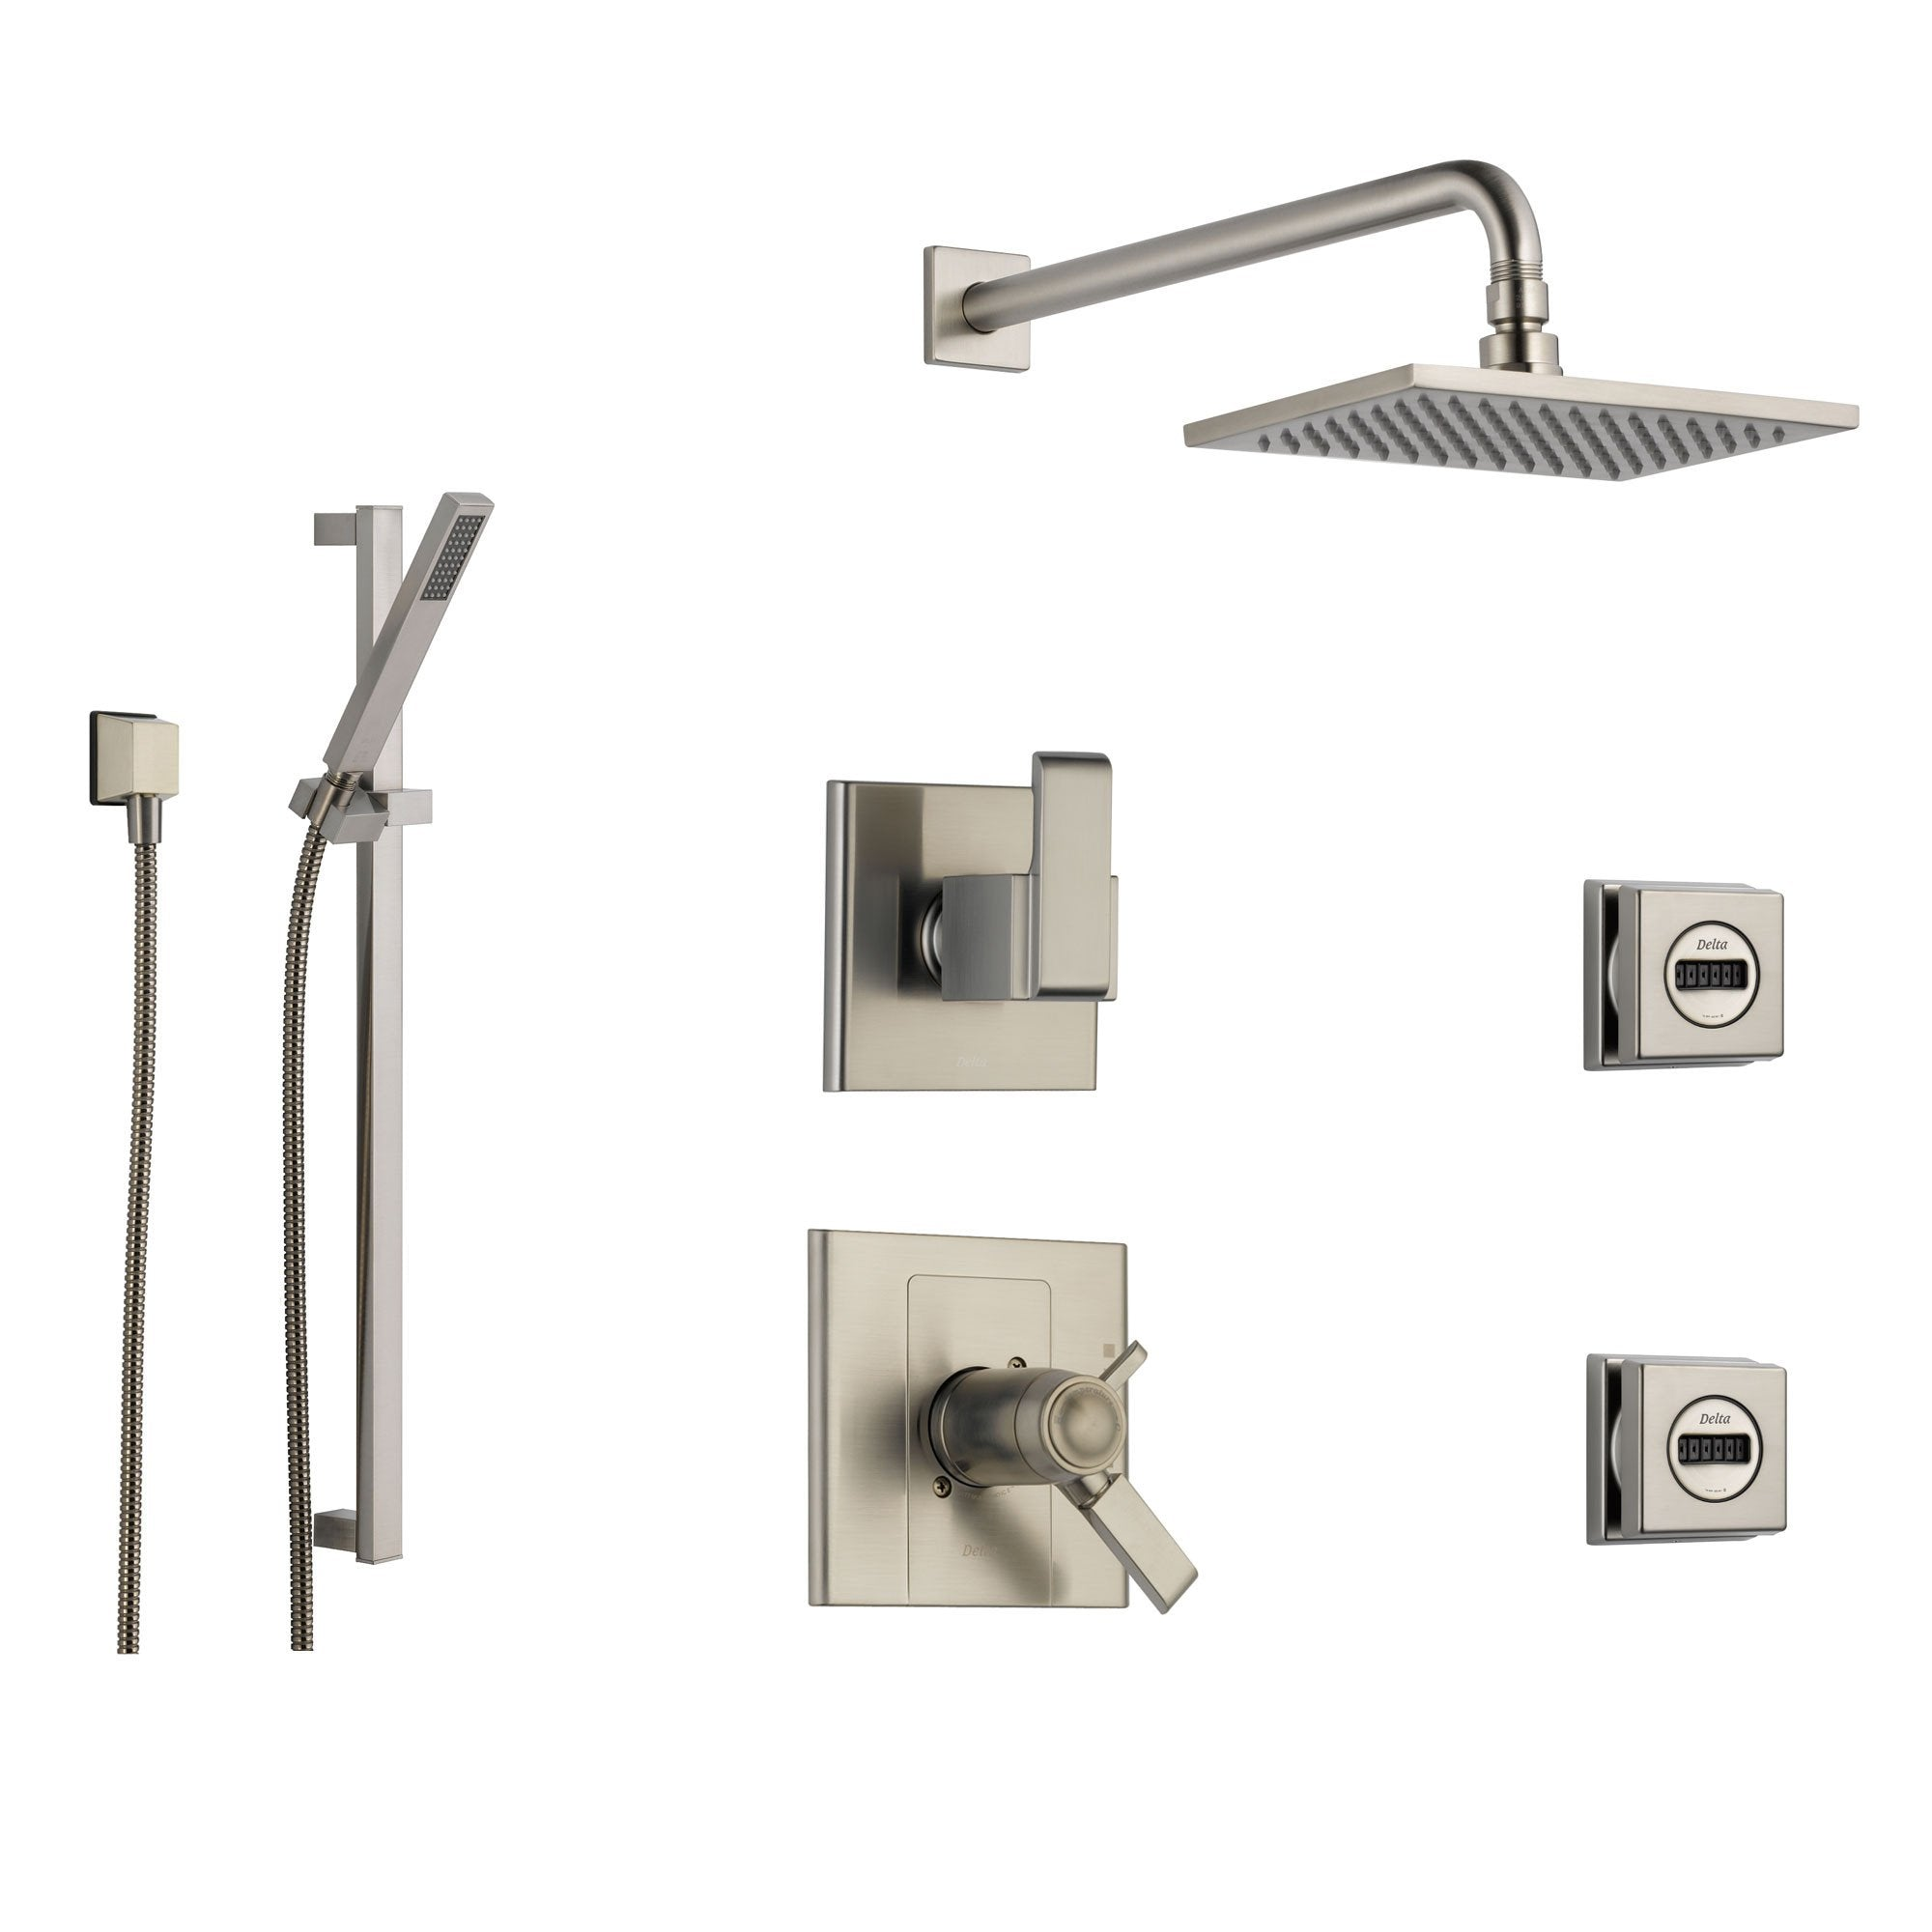 Delta Arzo Stainless Steel Shower System with Thermostatic Shower Handle, 6-setting Diverter, Large Square Showerhead, Modern Handheld Shower, and 2 Body Sprays SS17T8692SS